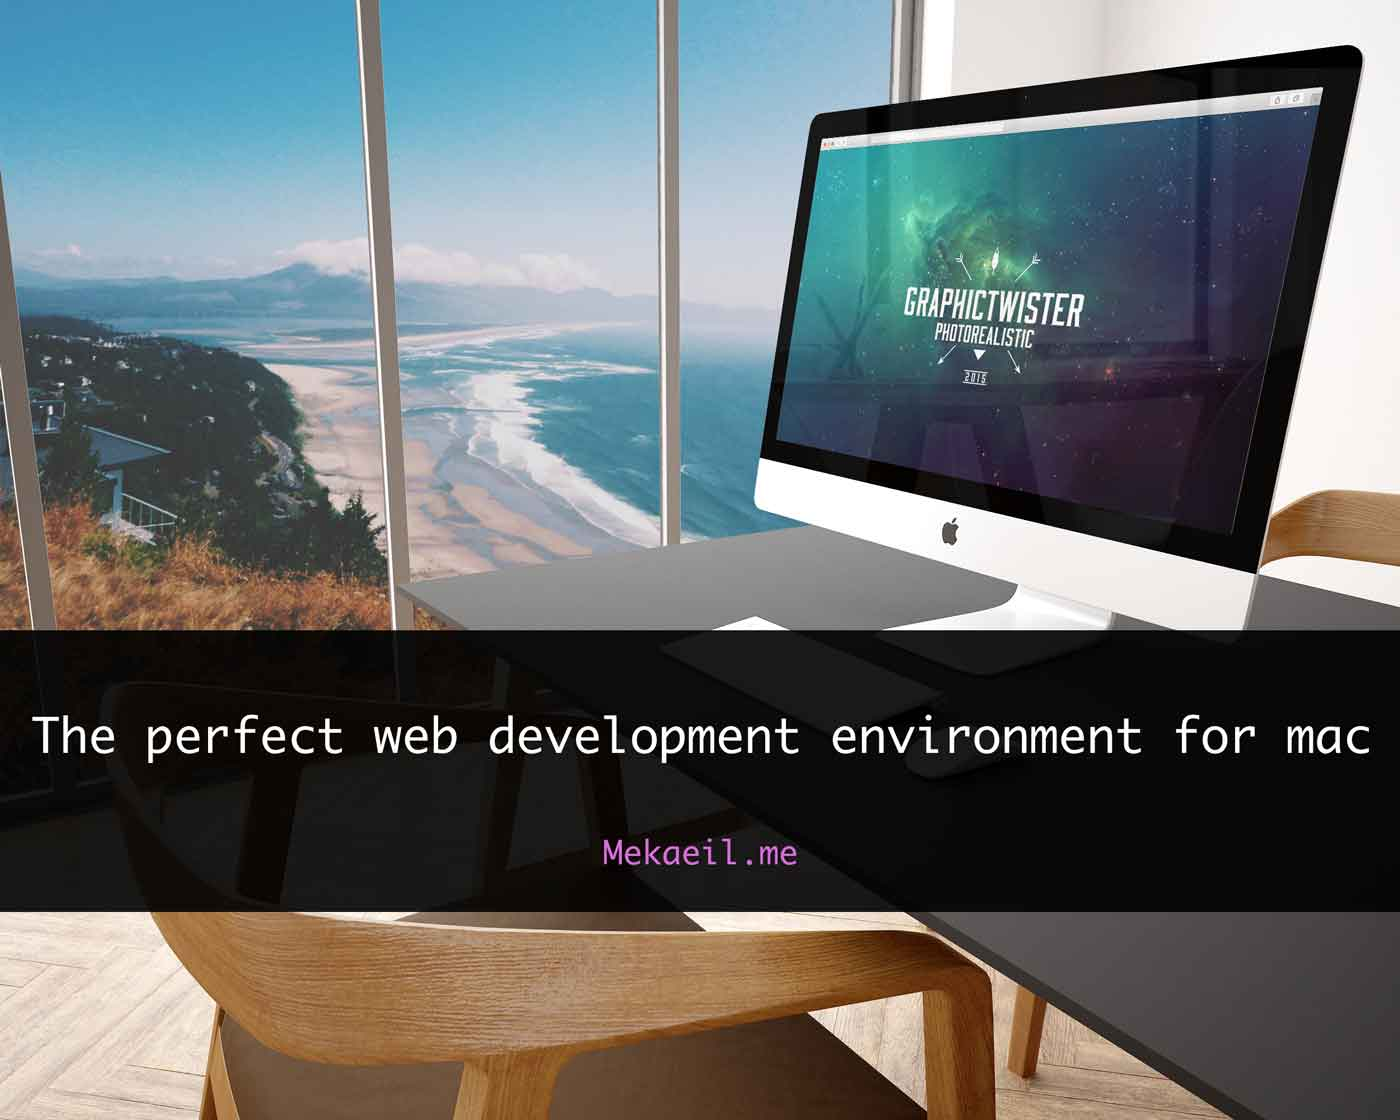 The perfect web development environment for mac